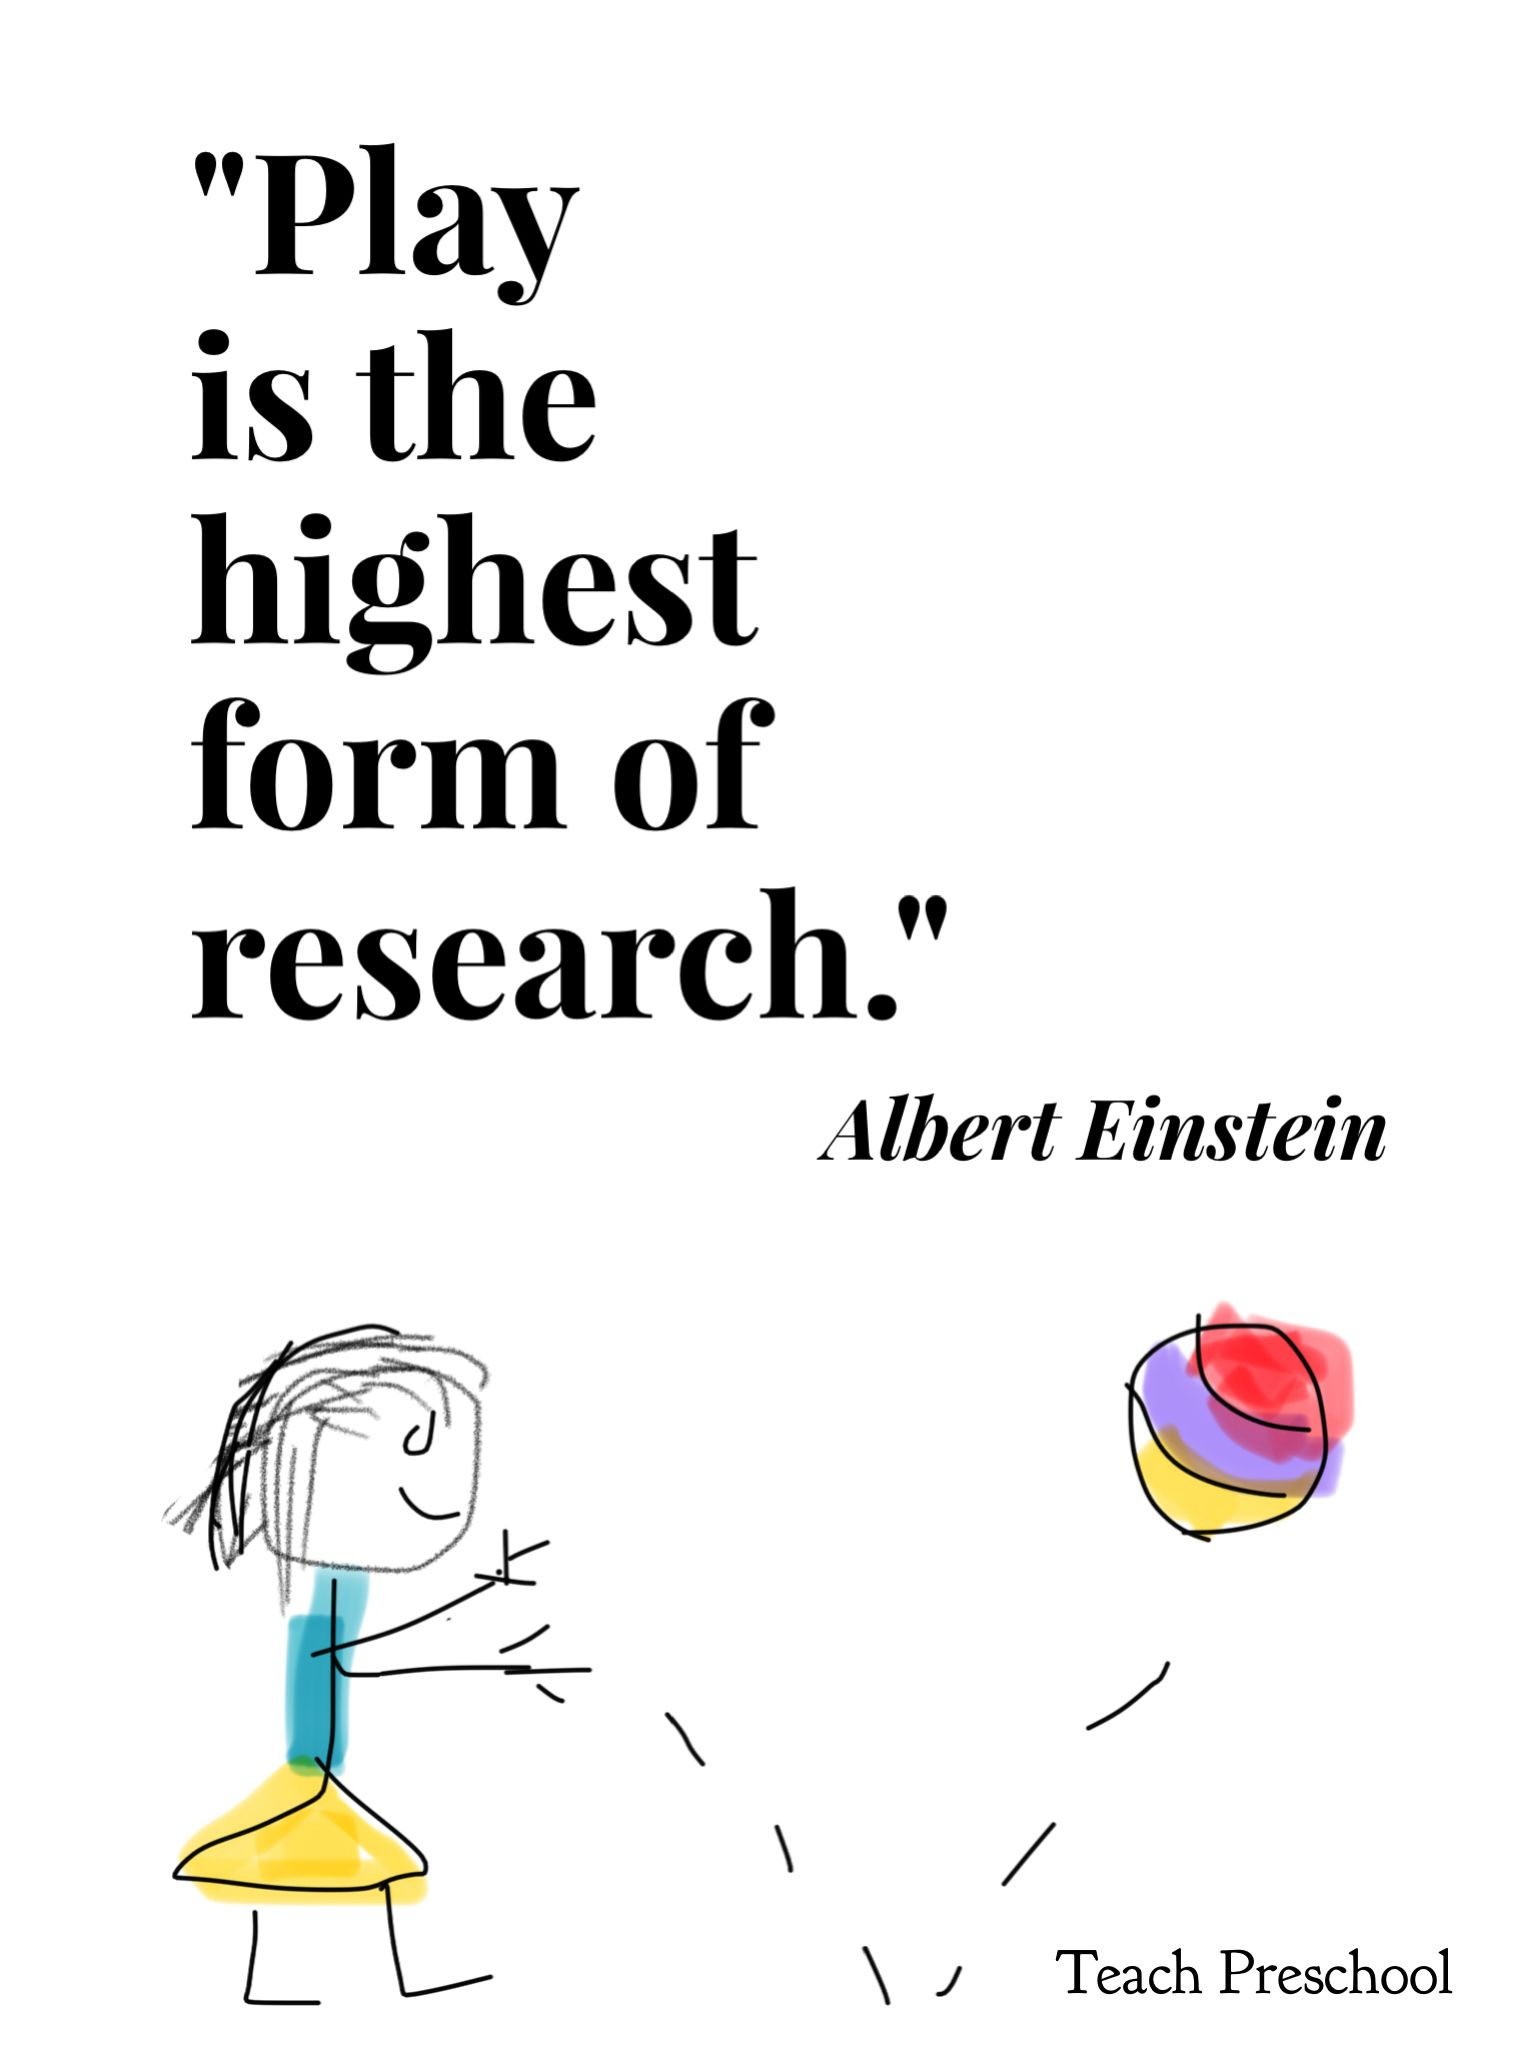 Play is the highest form of research! Preschool quotes